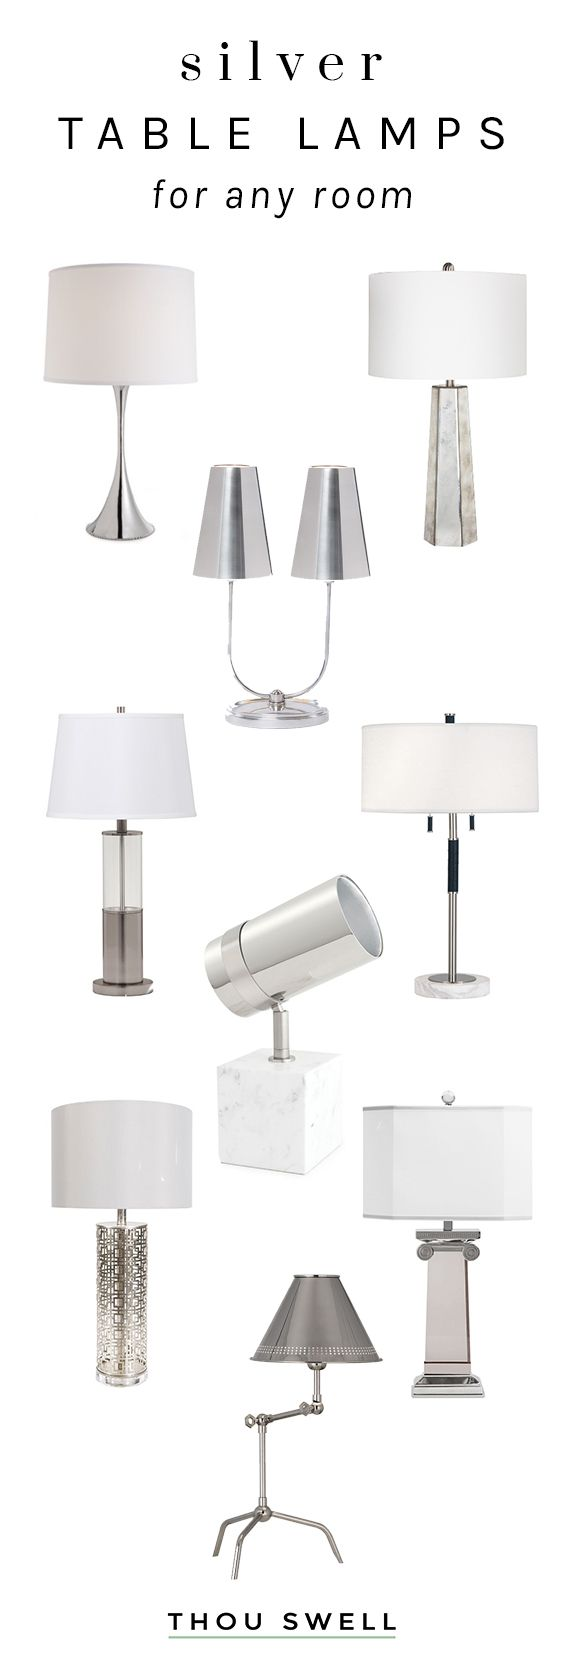 Stylish silver table lamps for any room in the house on Thou Swell @thouswellblog